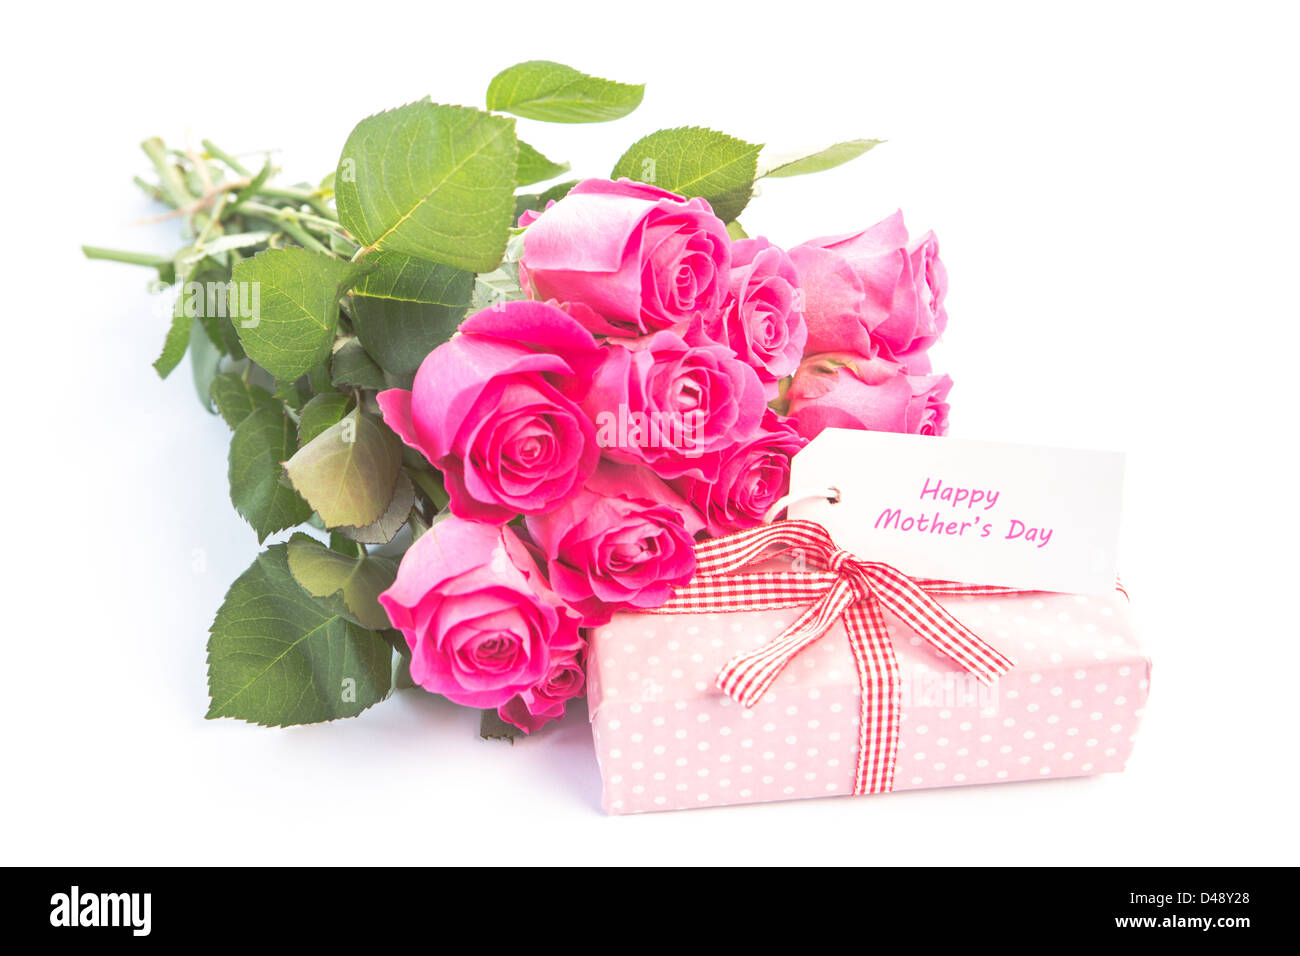 Bouquet of pink roses next to a gift with a happy birthday card bouquet of pink roses next to a gift with a happy birthday card izmirmasajfo